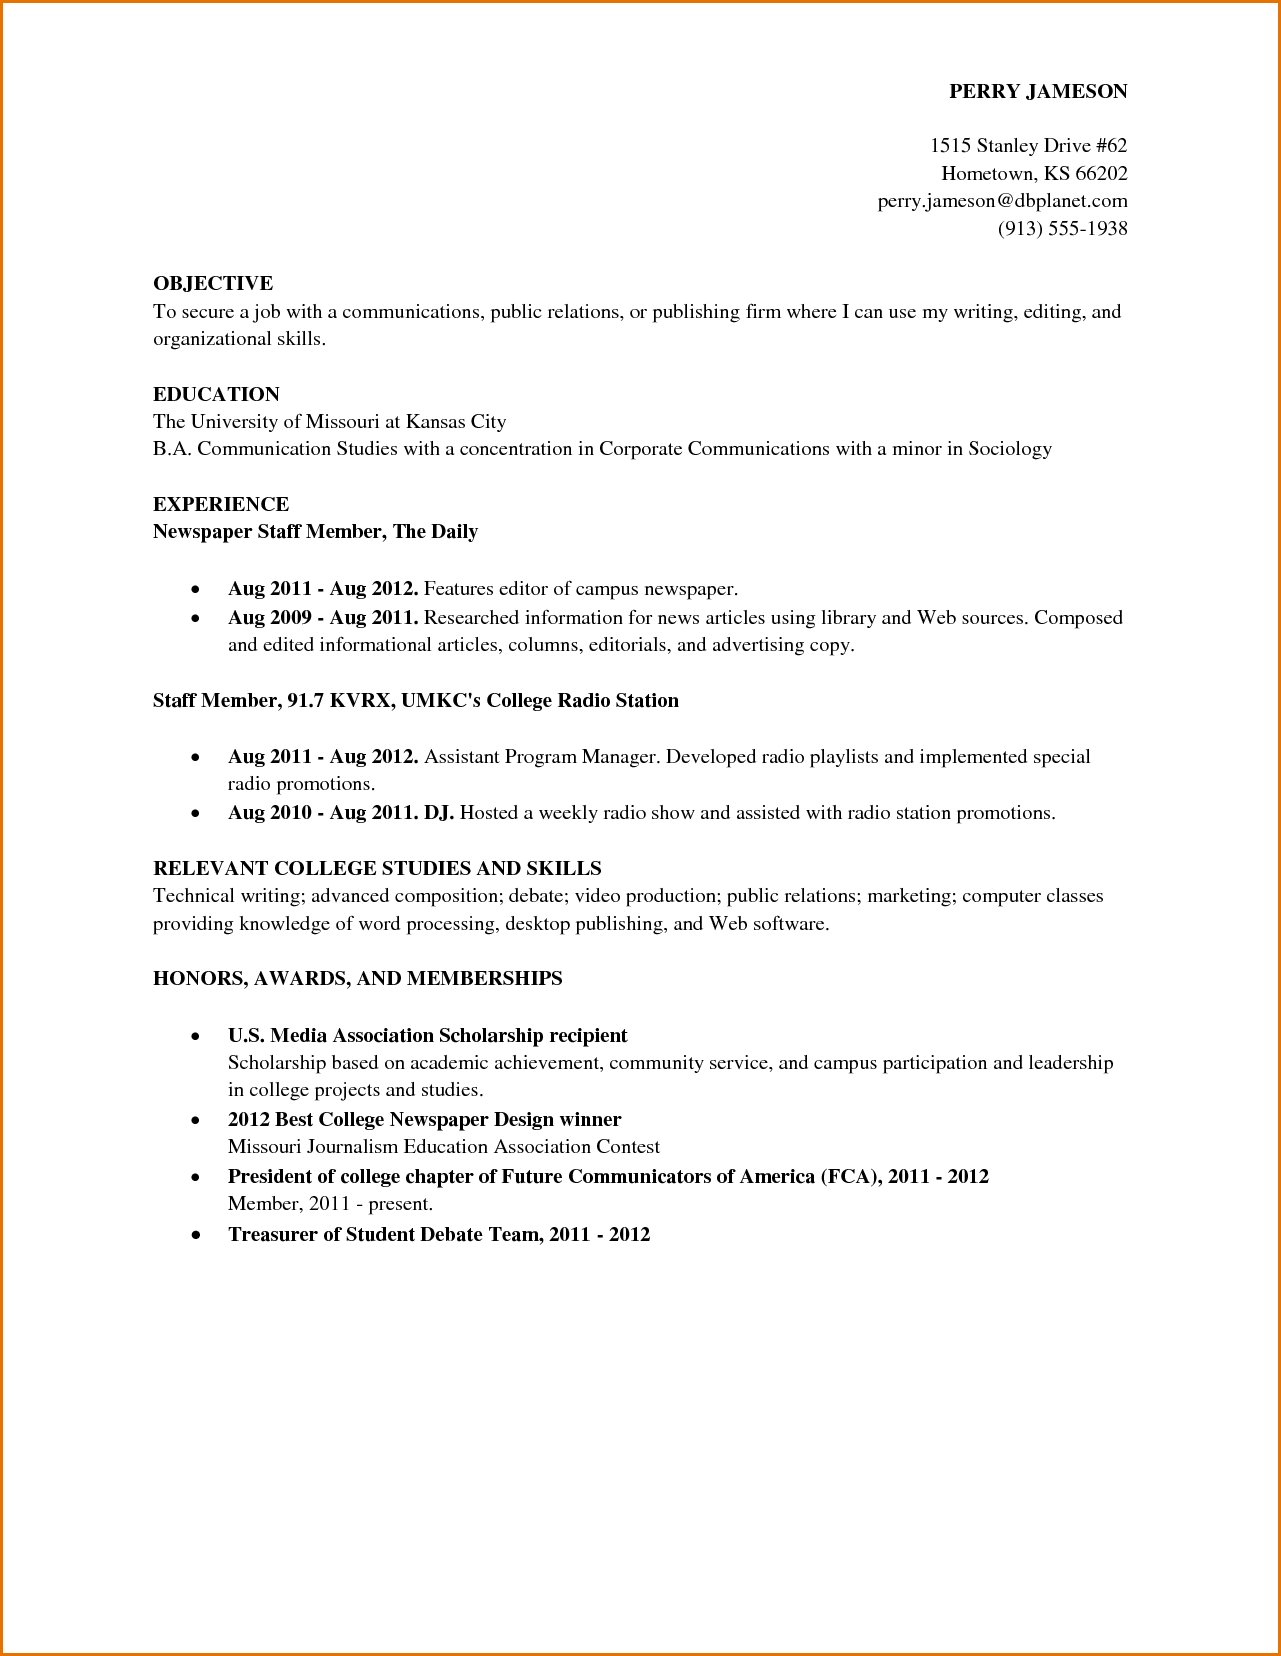 college student job resumes Yeni.mescale.co